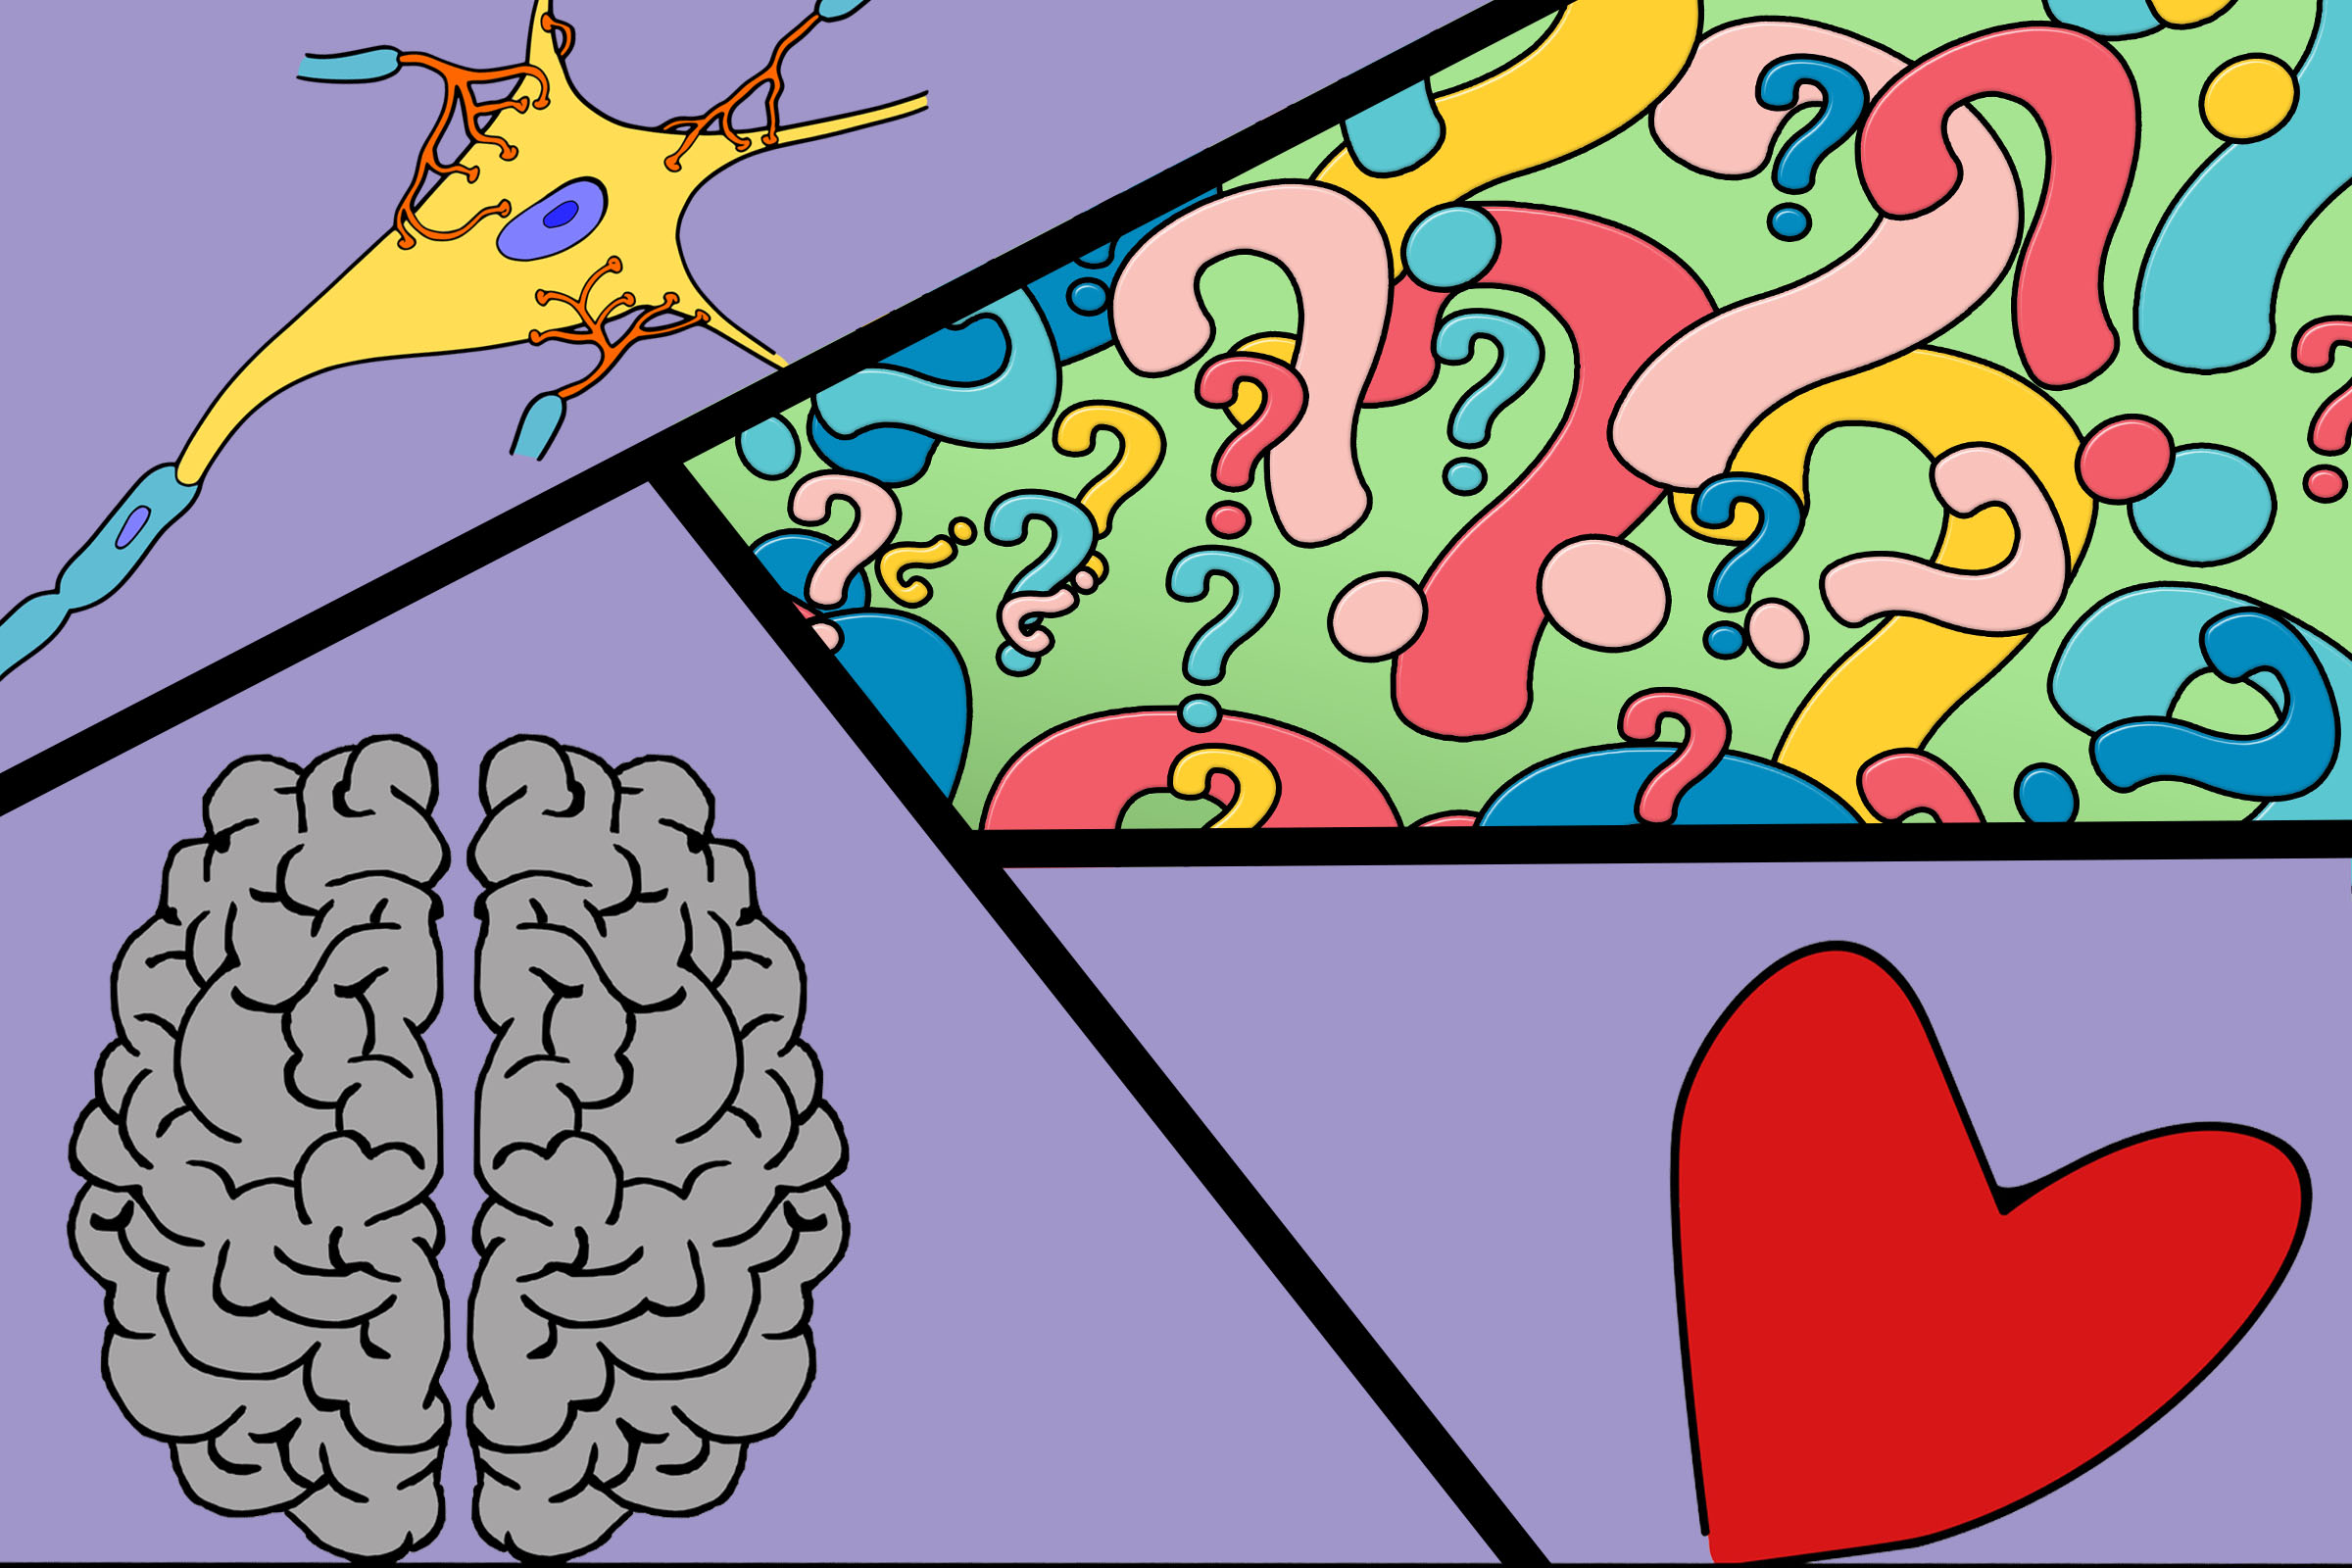 illustration of heart, neuron, brain and question marks